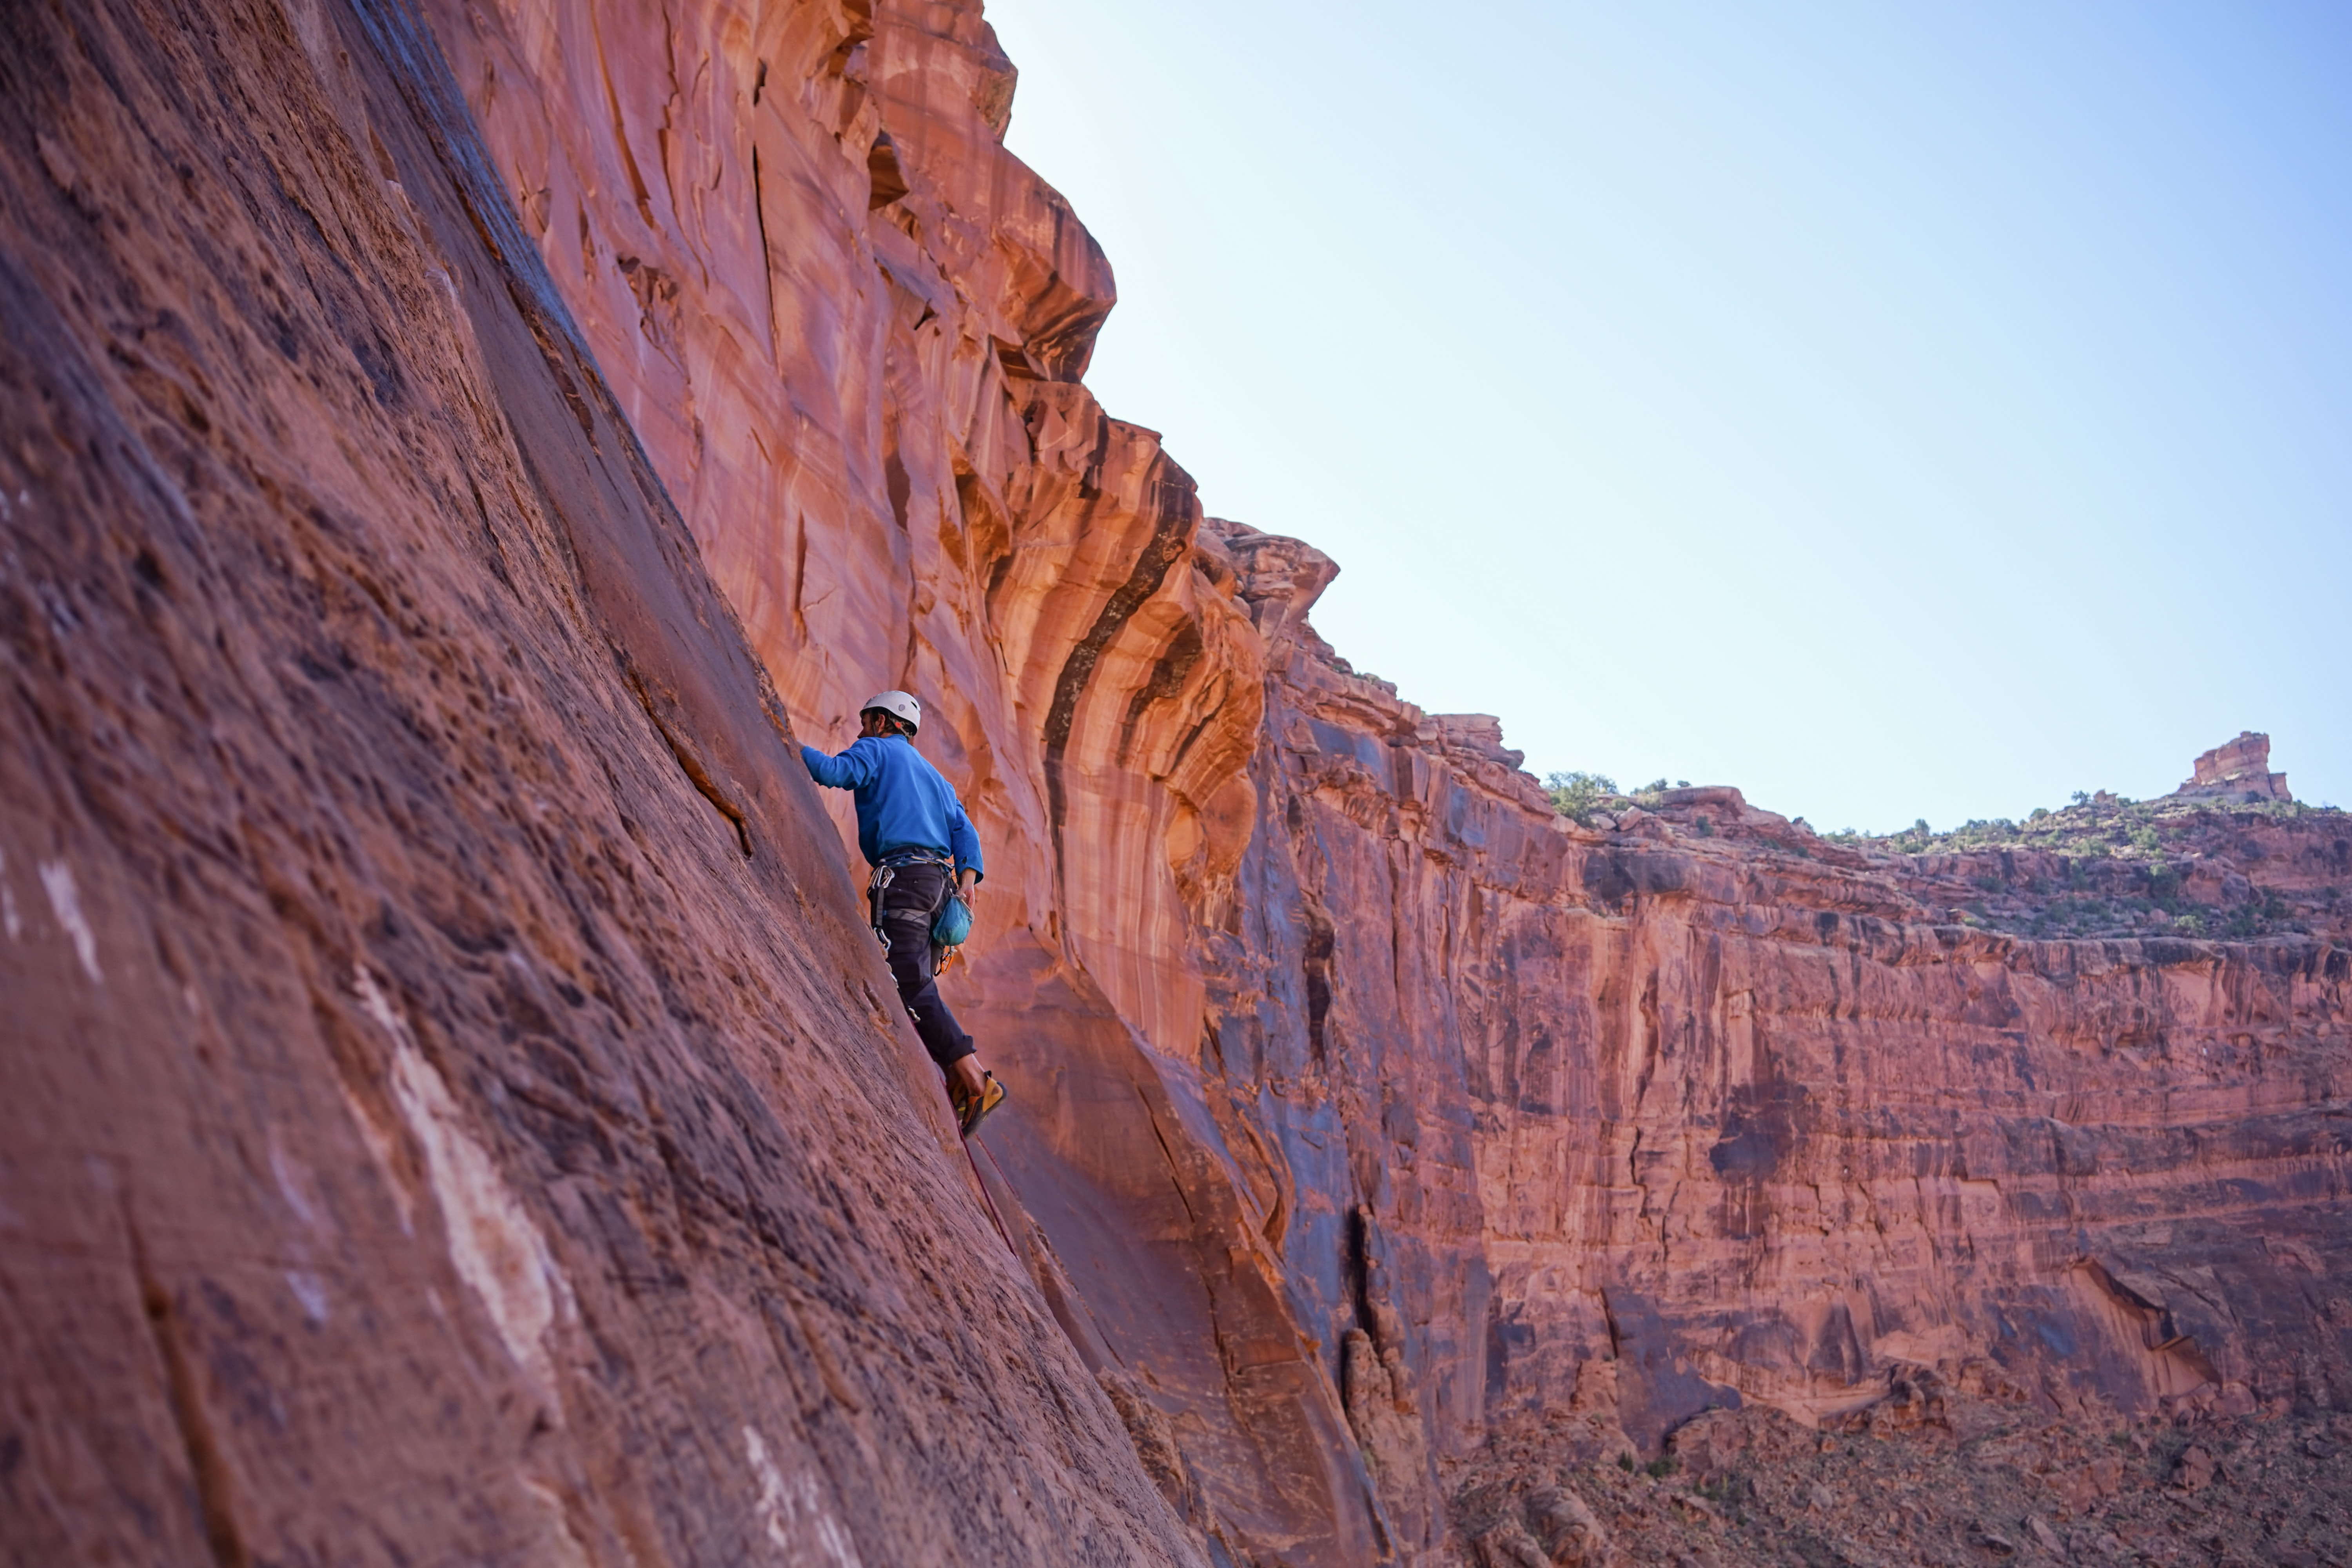 Extreme climber scales the side of a rocky mountain